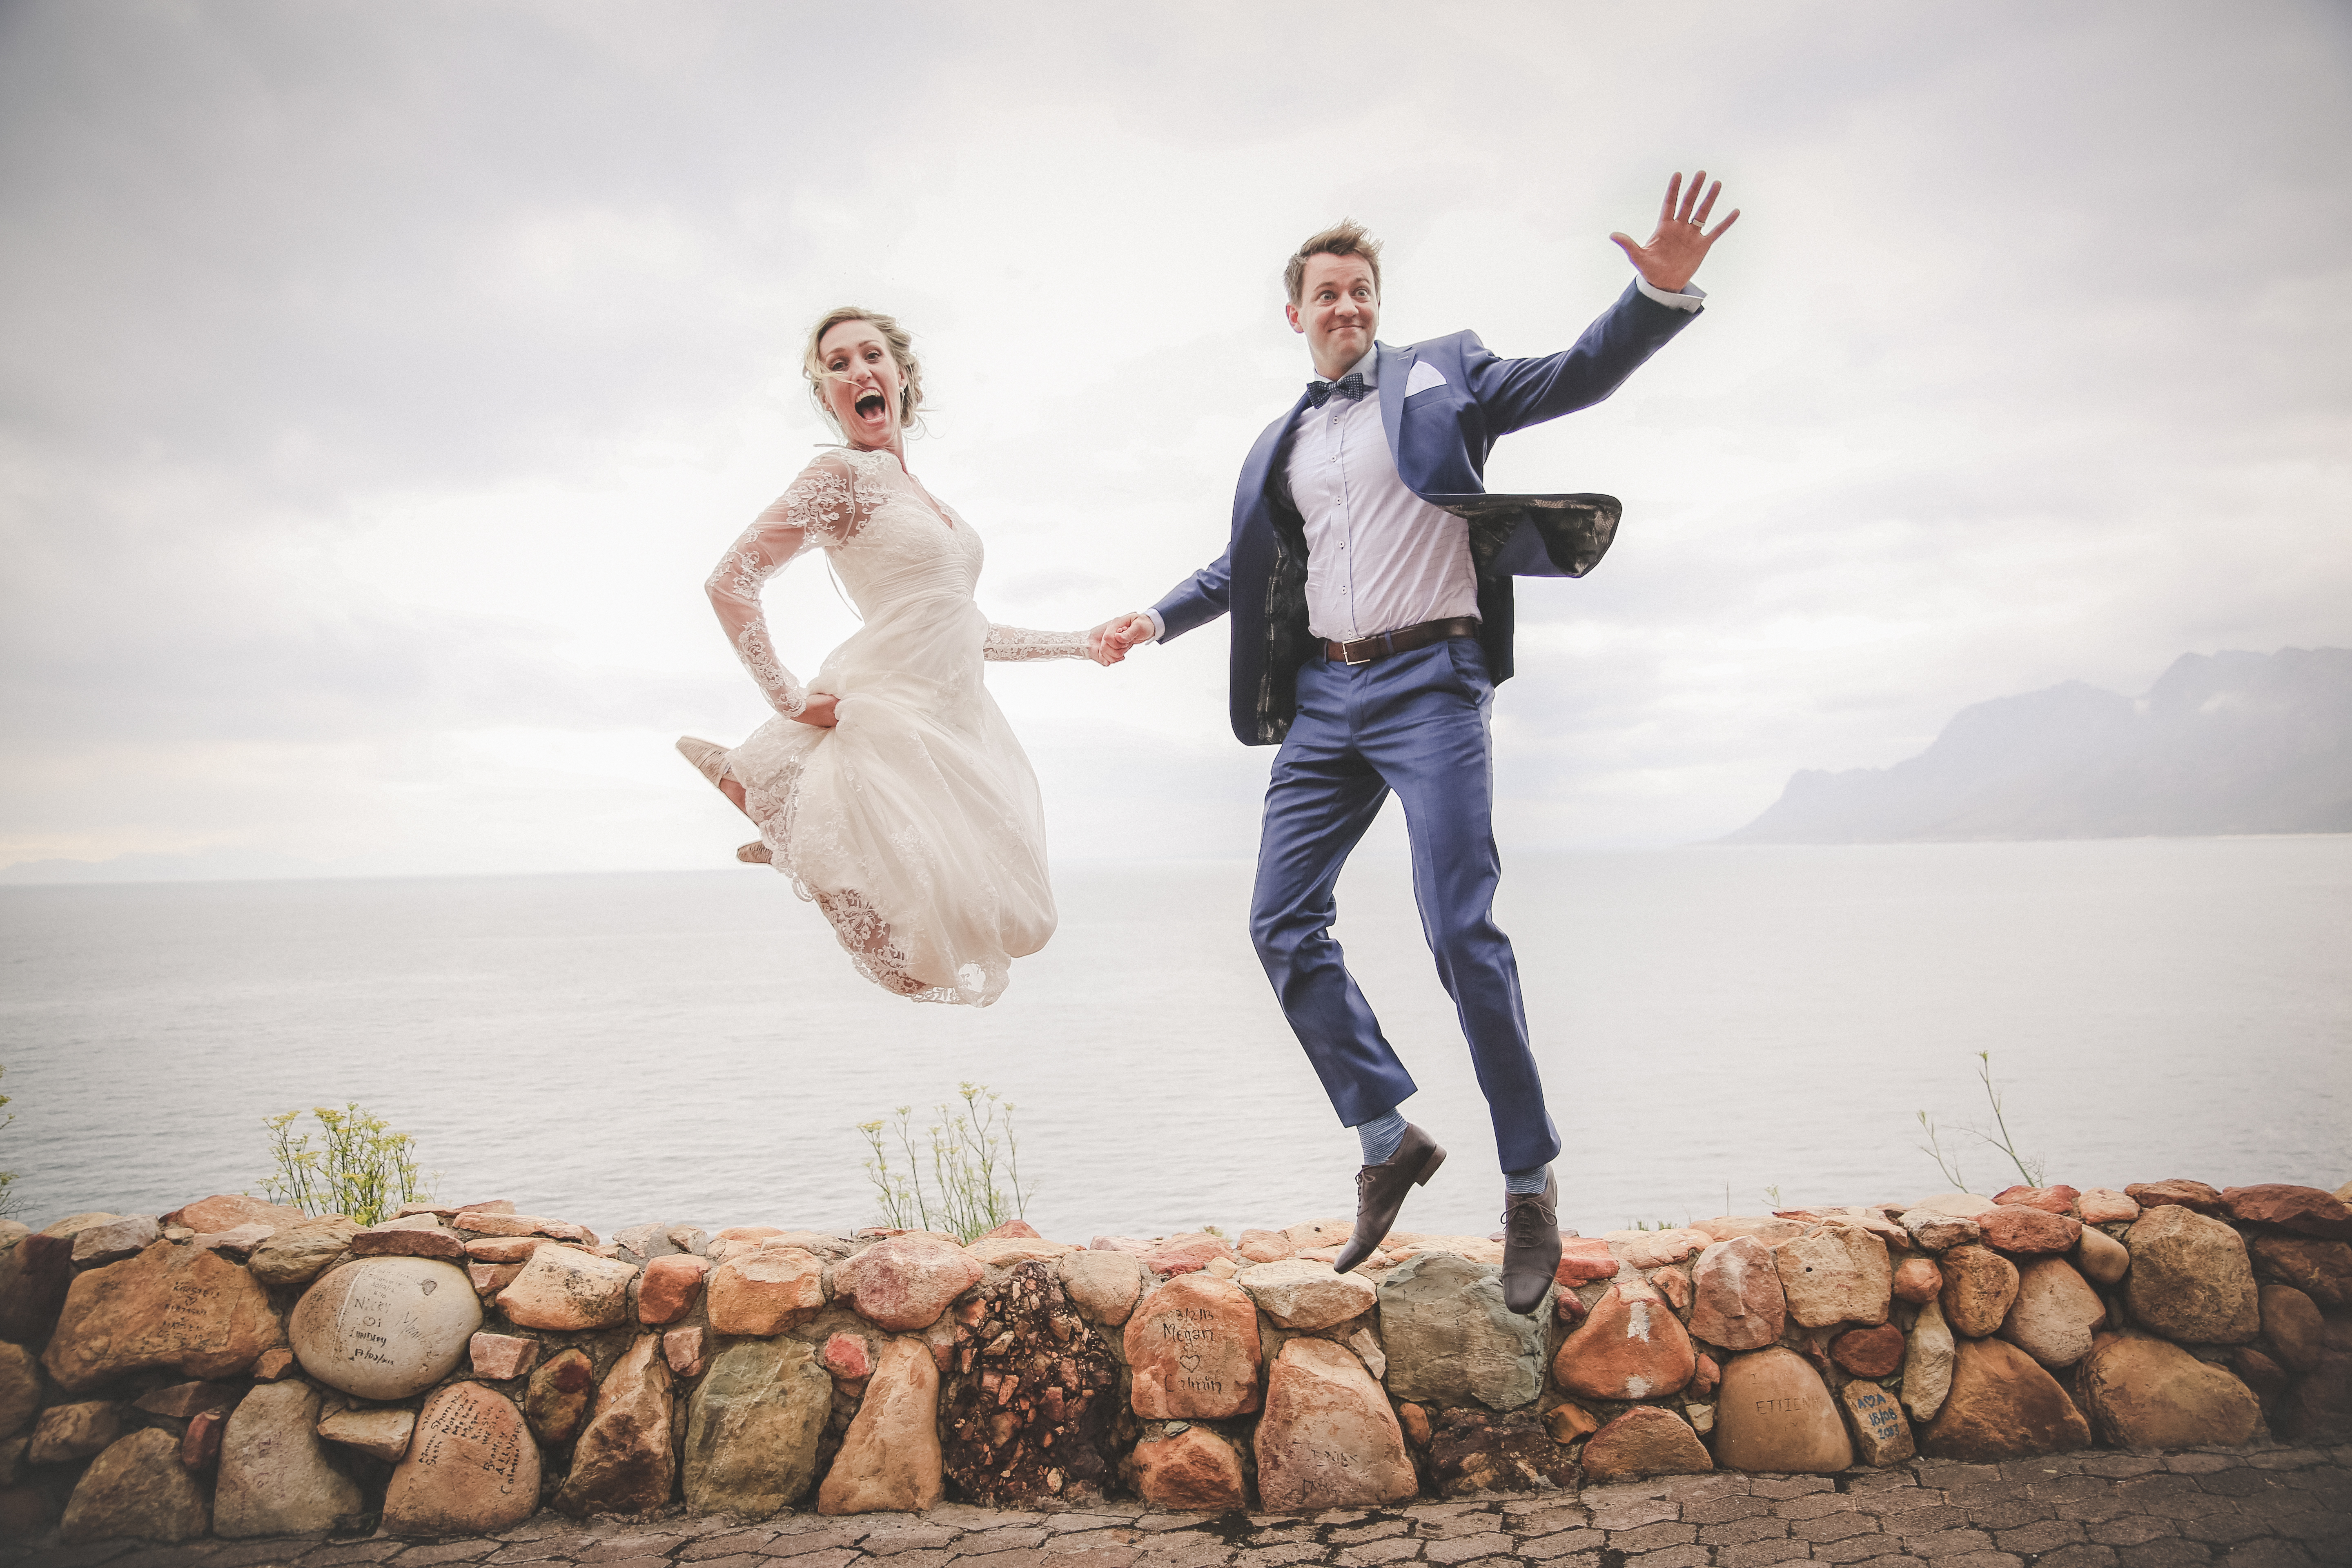 cape-town-wedding-photographers-zandri-du-preez-photography-2.jpg